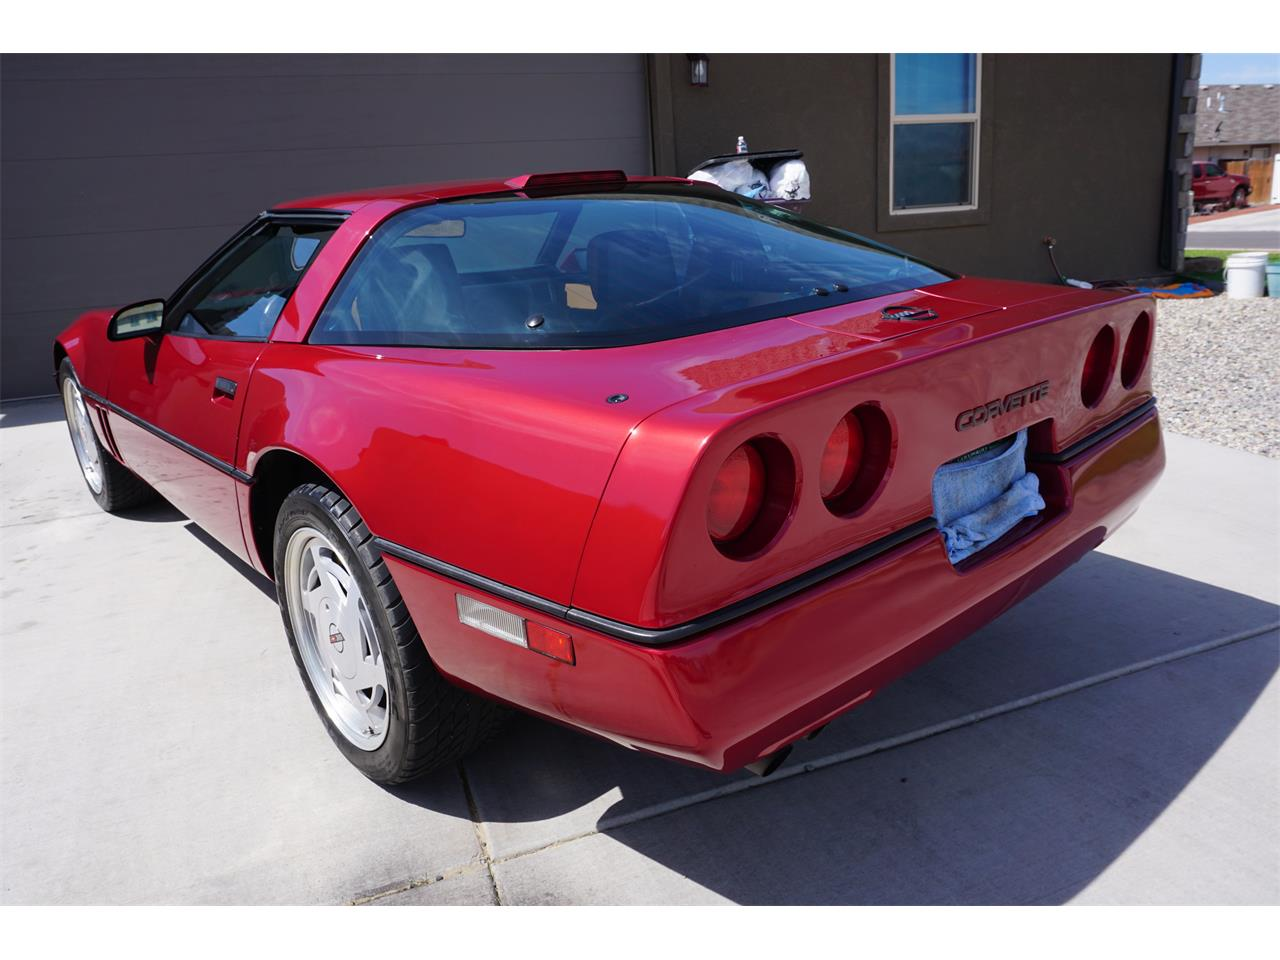 Large Picture of '89 Chevrolet Corvette C4 - $9,500.00 Offered by a Private Seller - QTU6